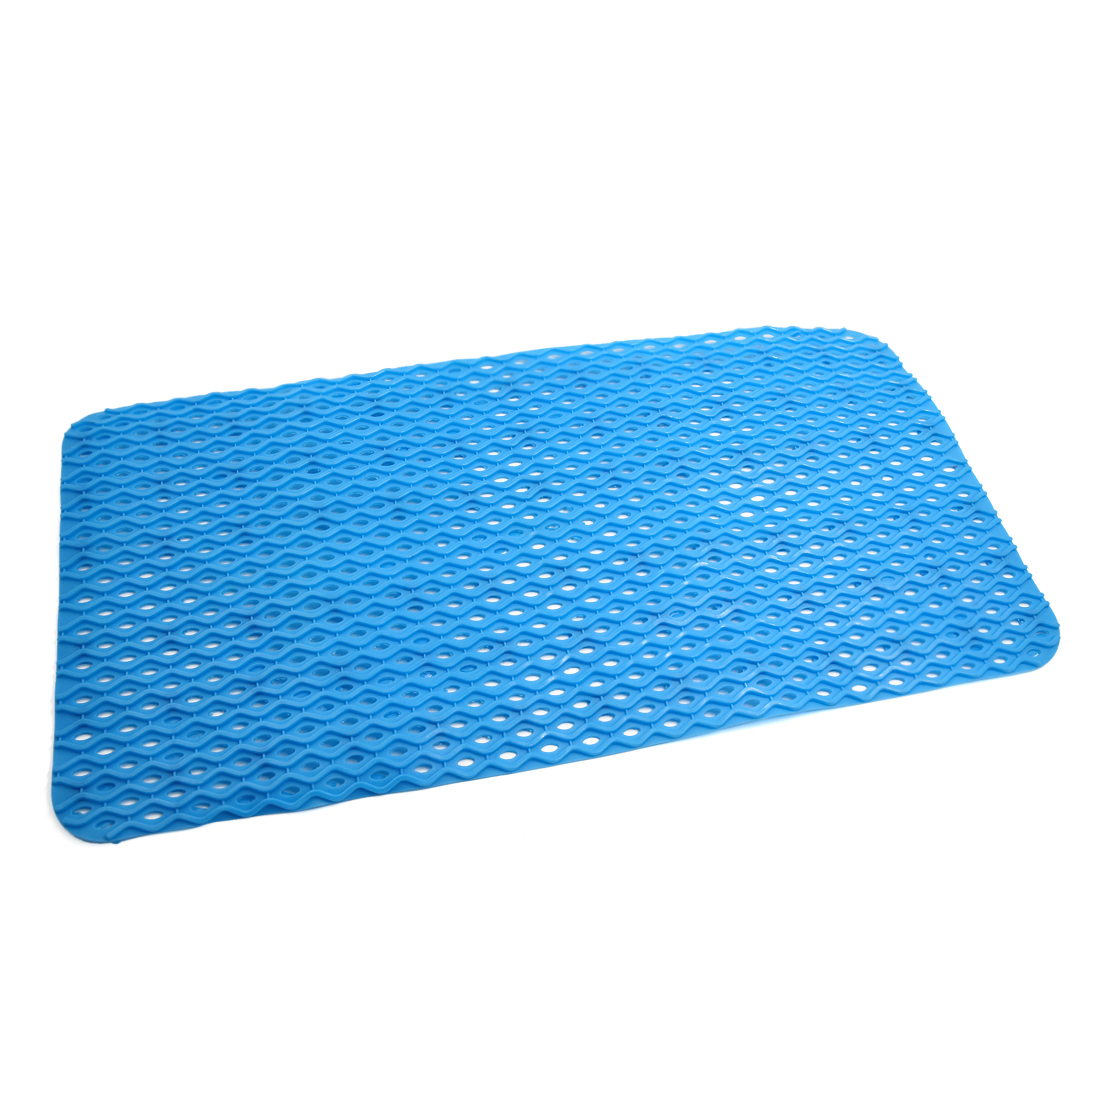 PVC Bathroom Shower Bath Tub Mat Non Slip With Suction Cups Anti Bacterial,  27.6